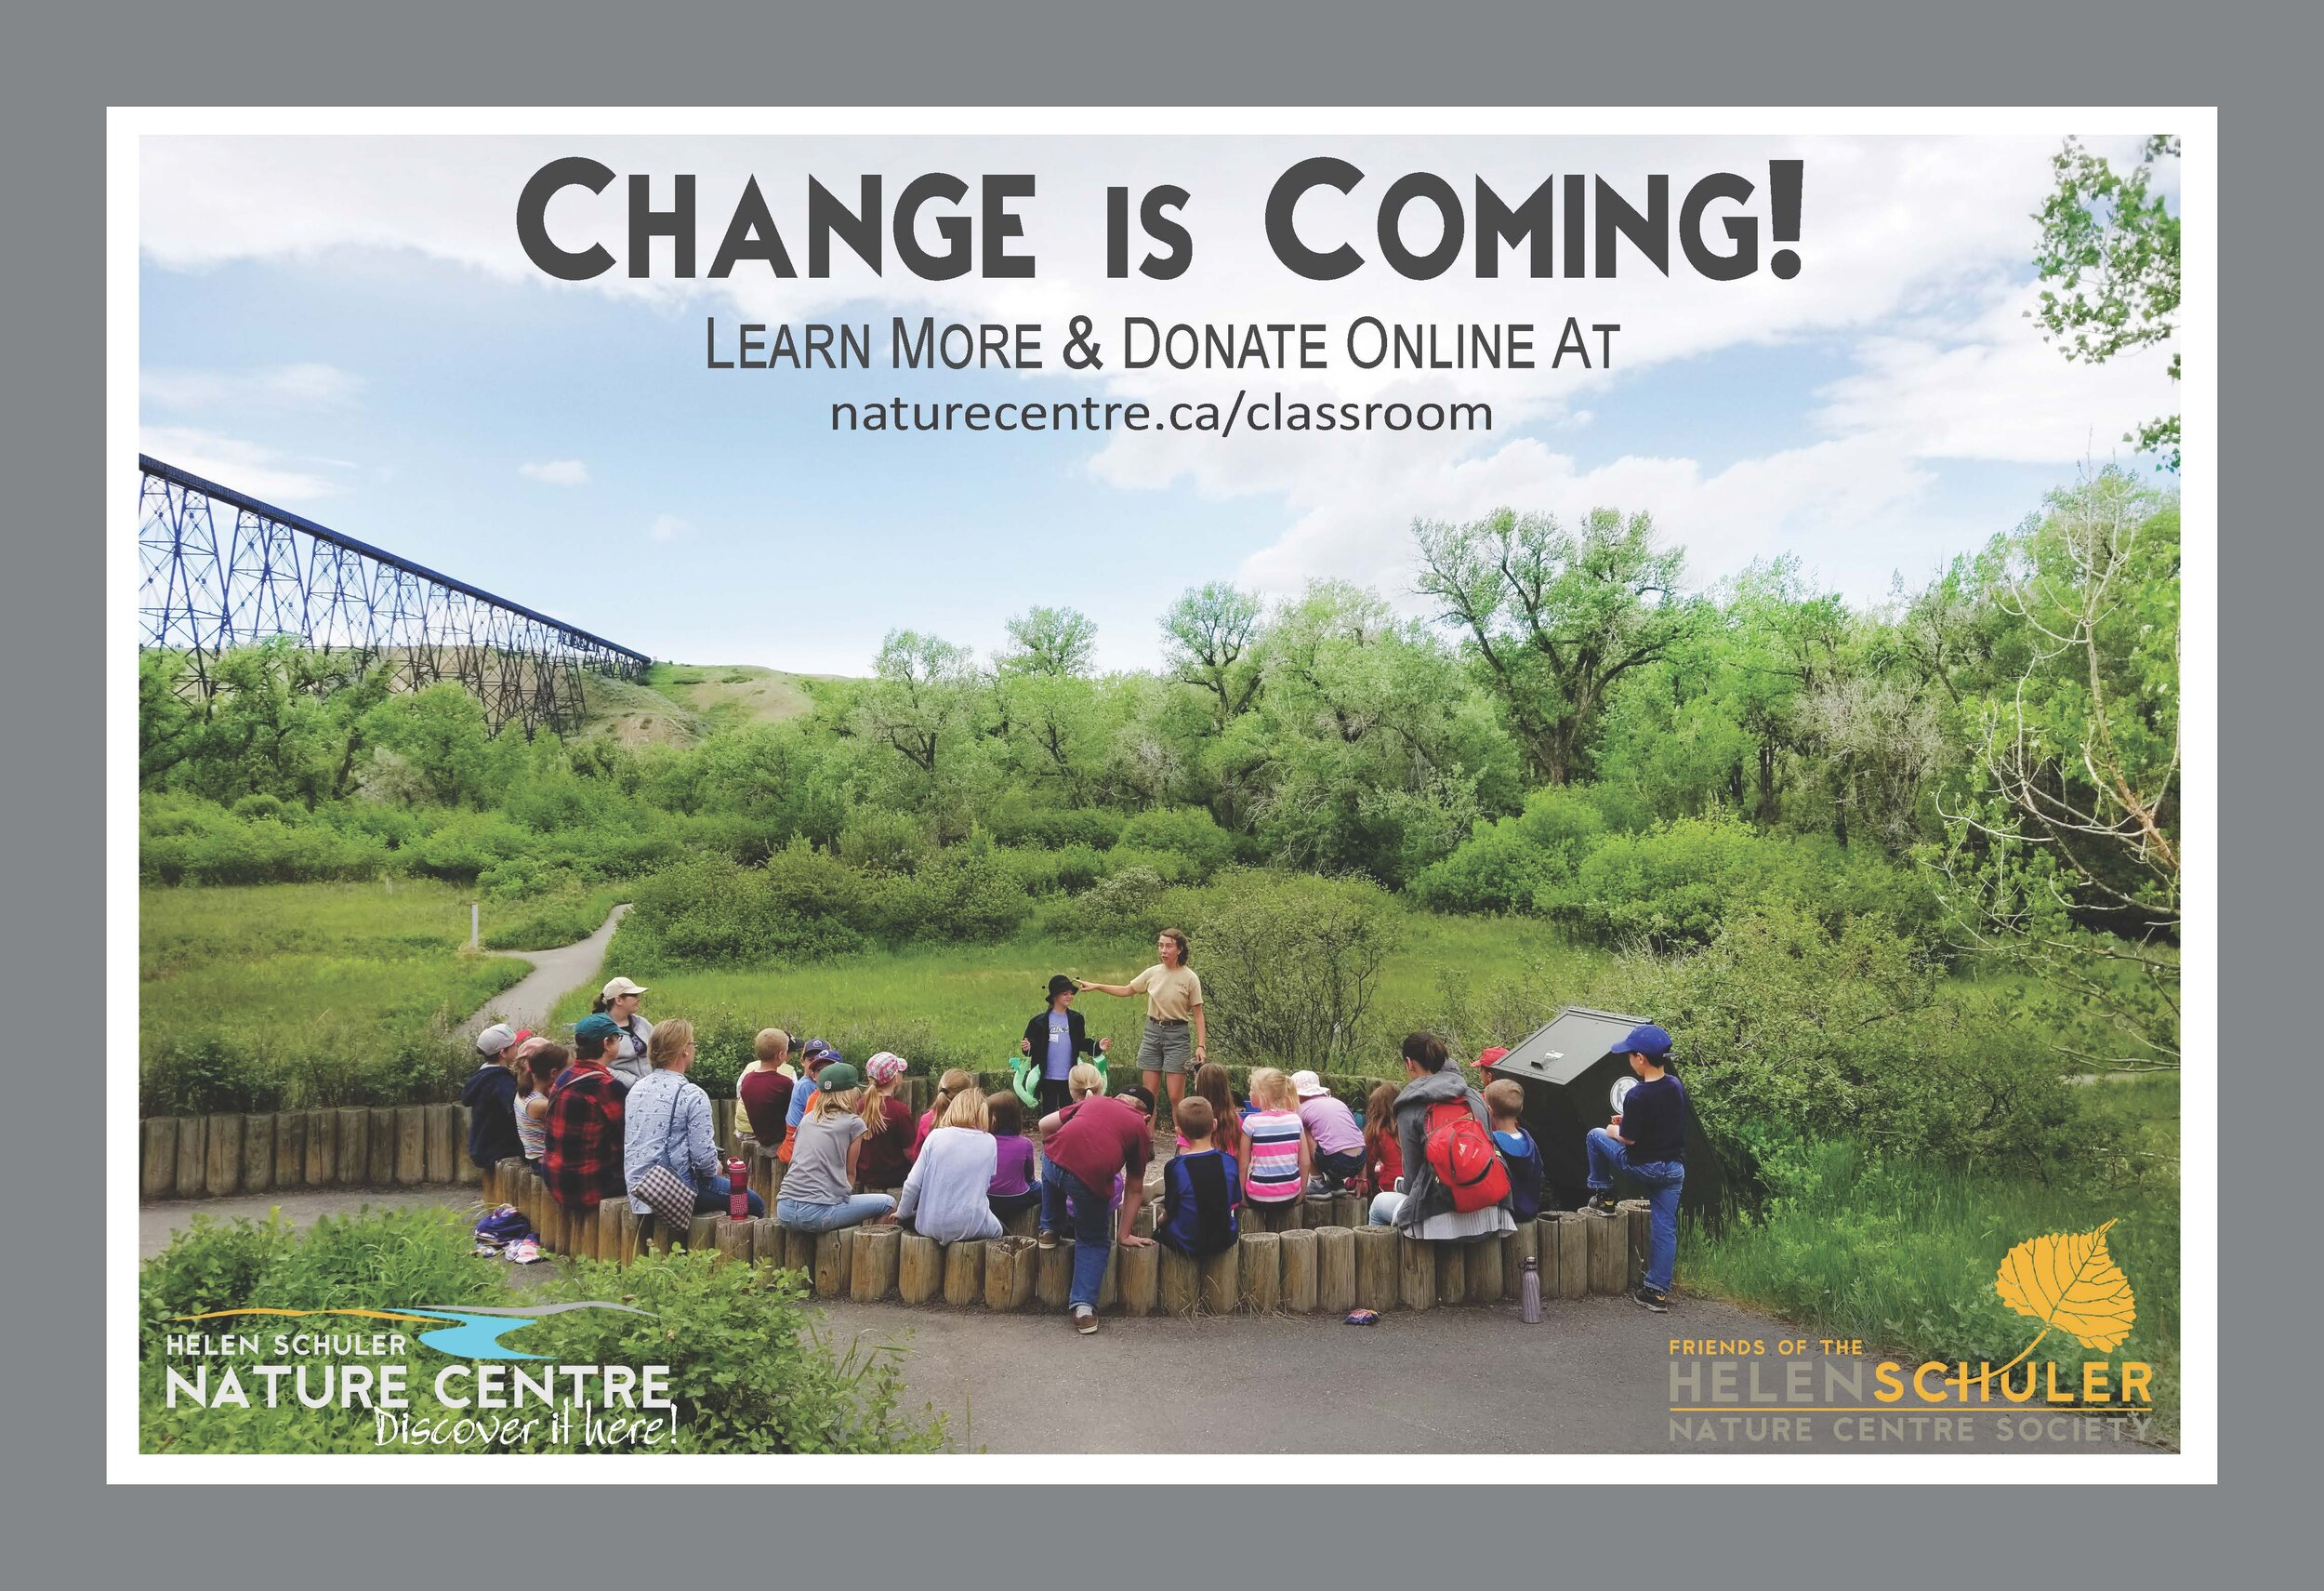 Change is coming! Helen Schuler Nature Centre to construct new Outdoor Learning Classroom. Project completion expected in 2020.